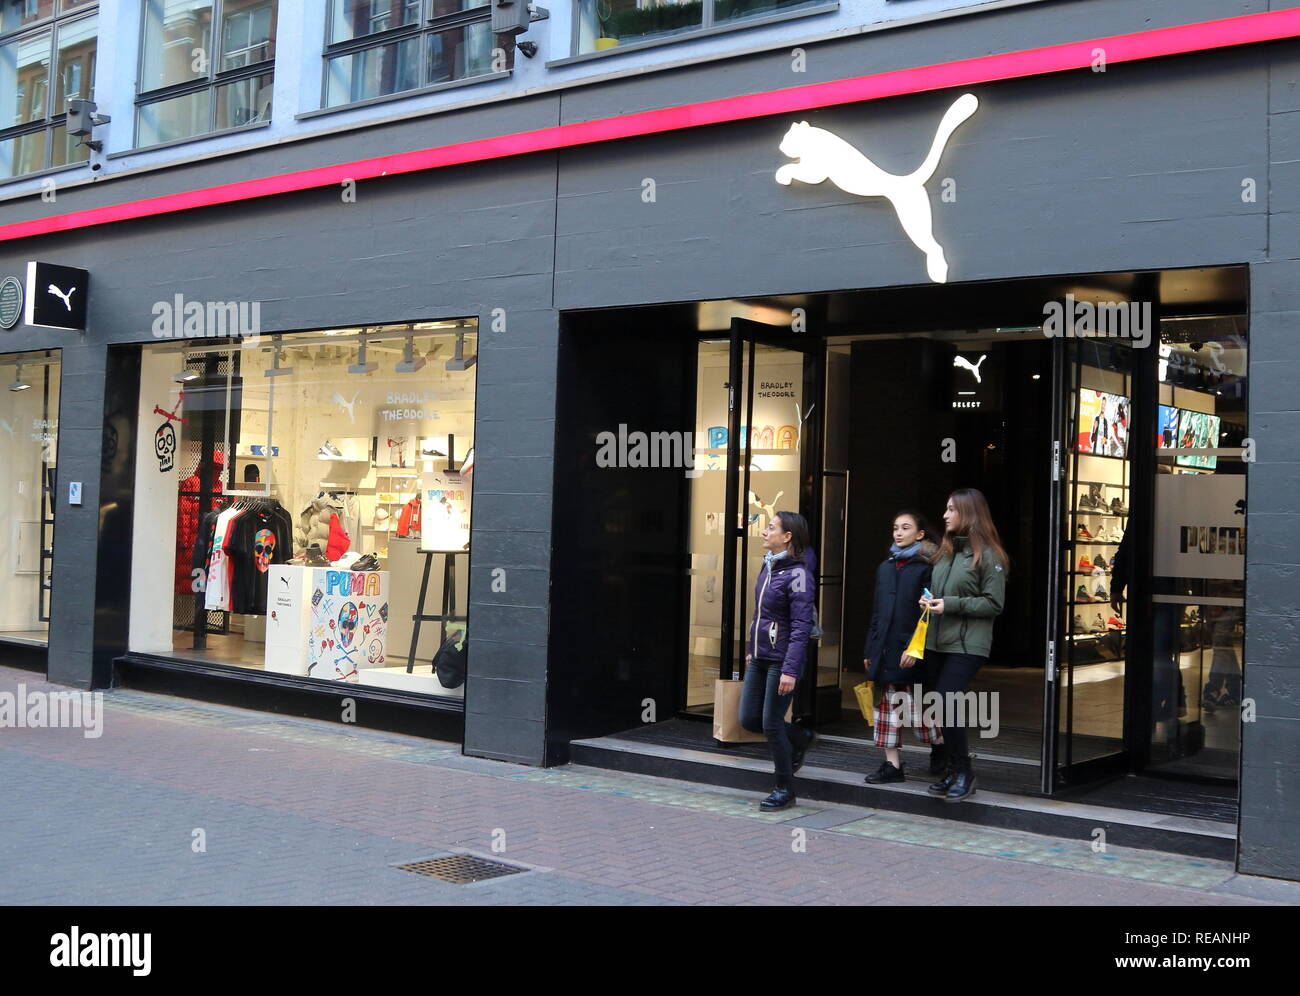 496f8c1485ea70 Puma Store Logo Stock Photos   Puma Store Logo Stock Images - Alamy